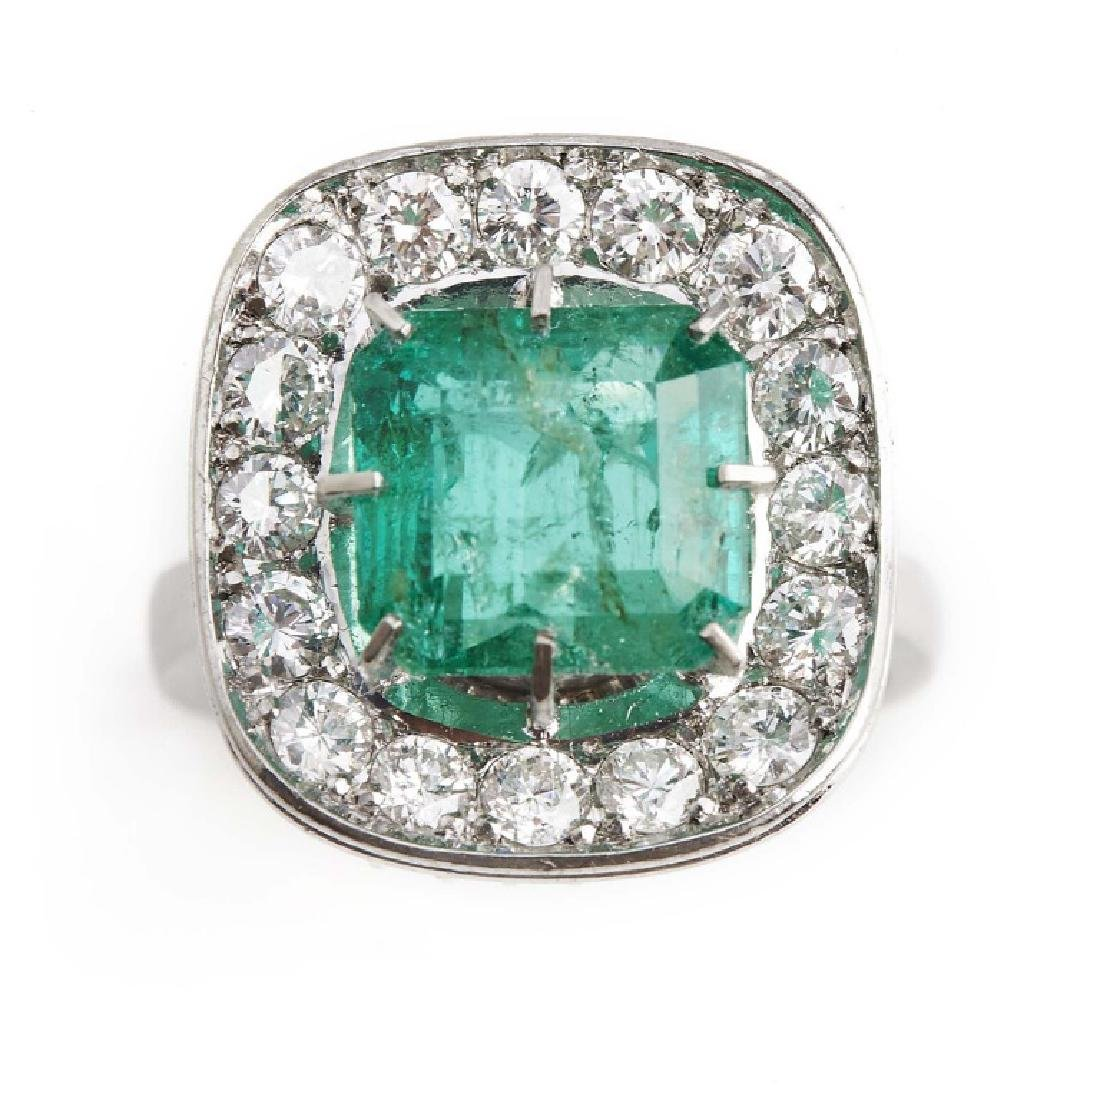 An emerald and diamond ring set with an emerald-cut